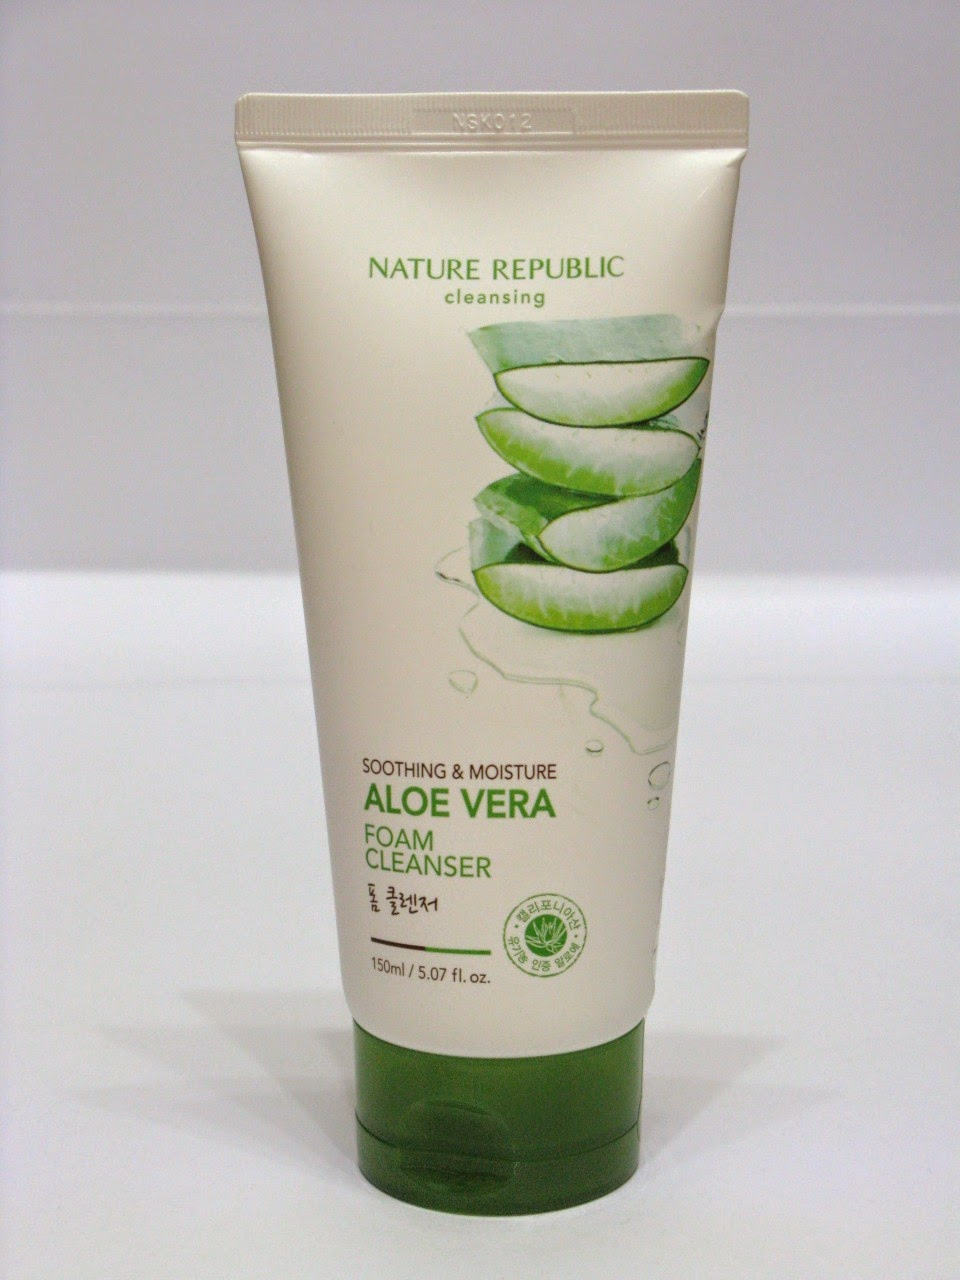 Jual NATURE REPUBLIC Soothing & Moisture Aloe Vera Foam Cleanser 150ml